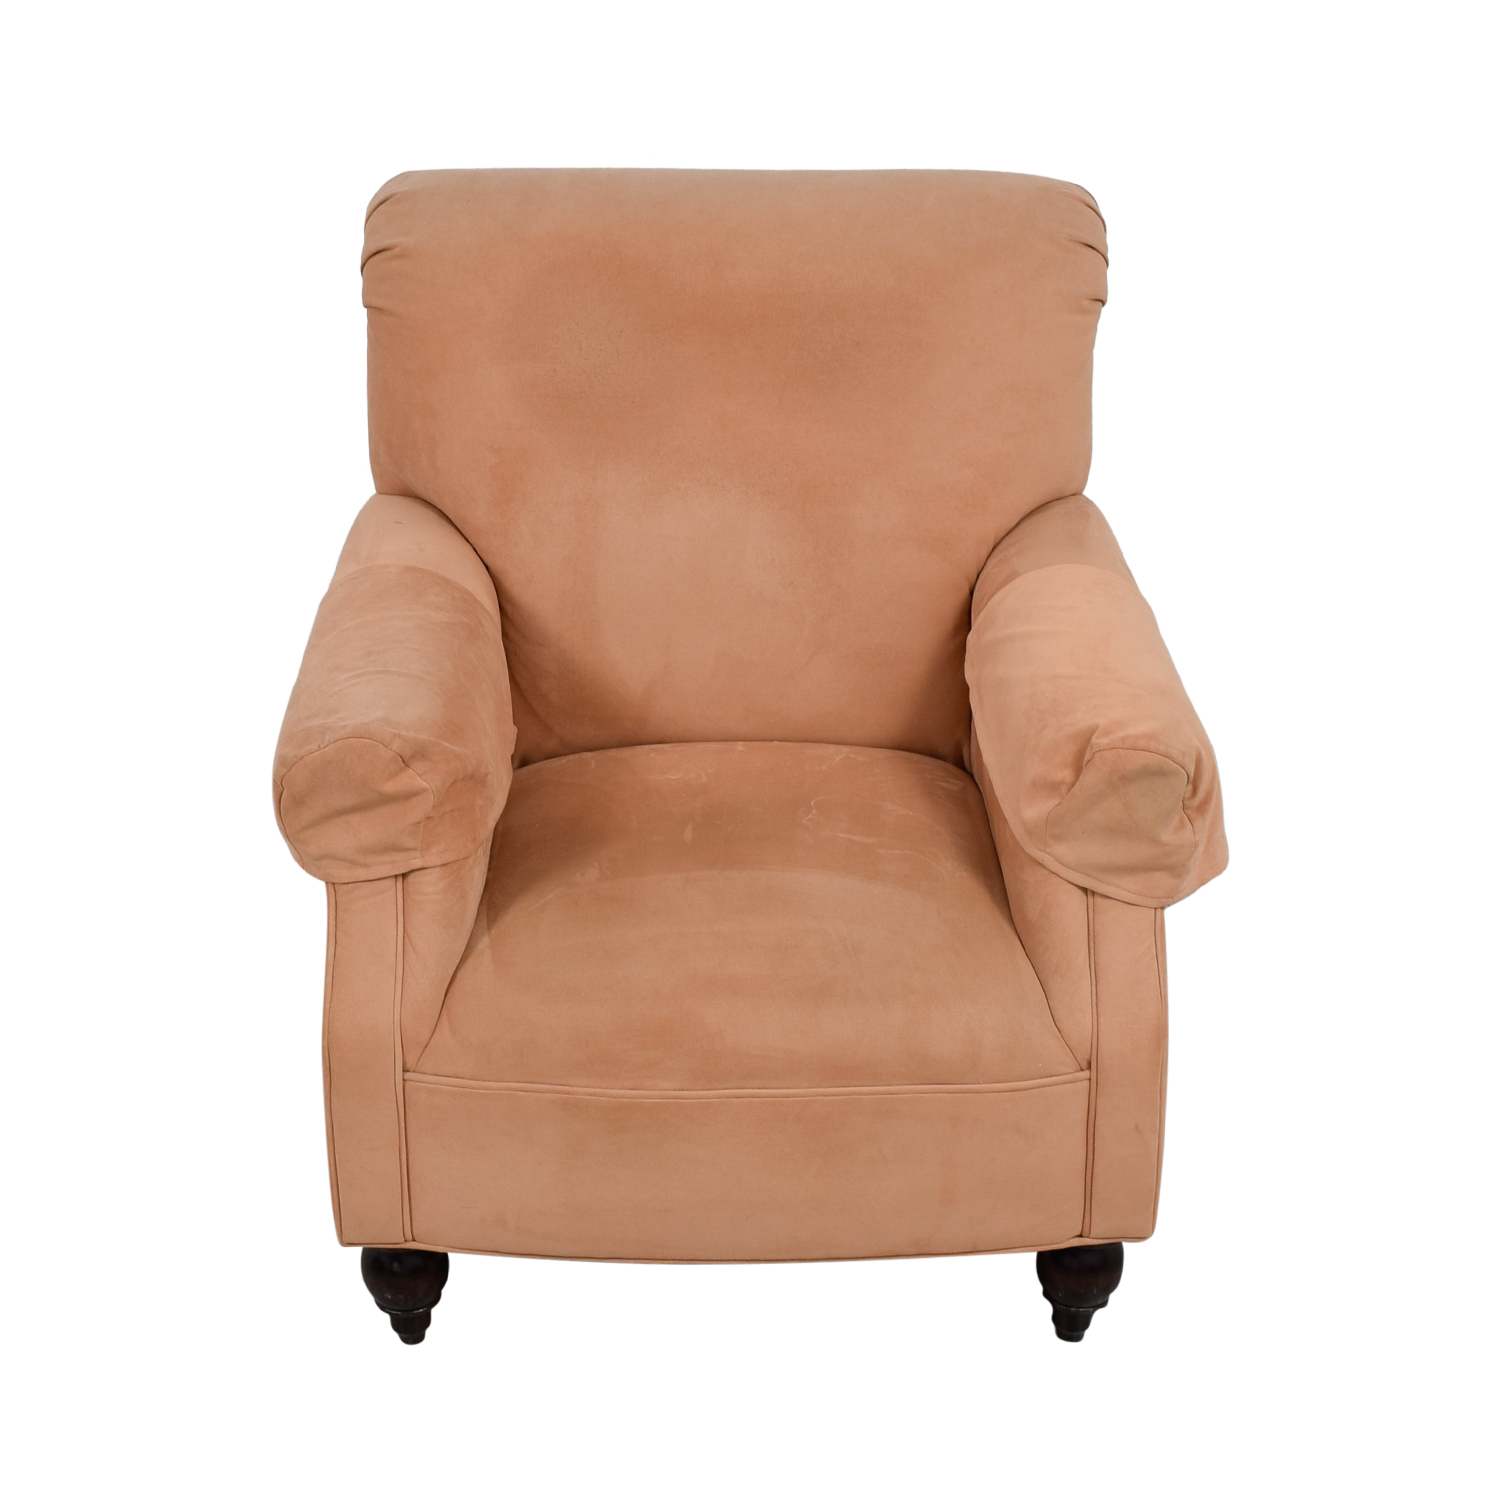 buy Expressions Devon Microfiber Salmon Accent Chair online